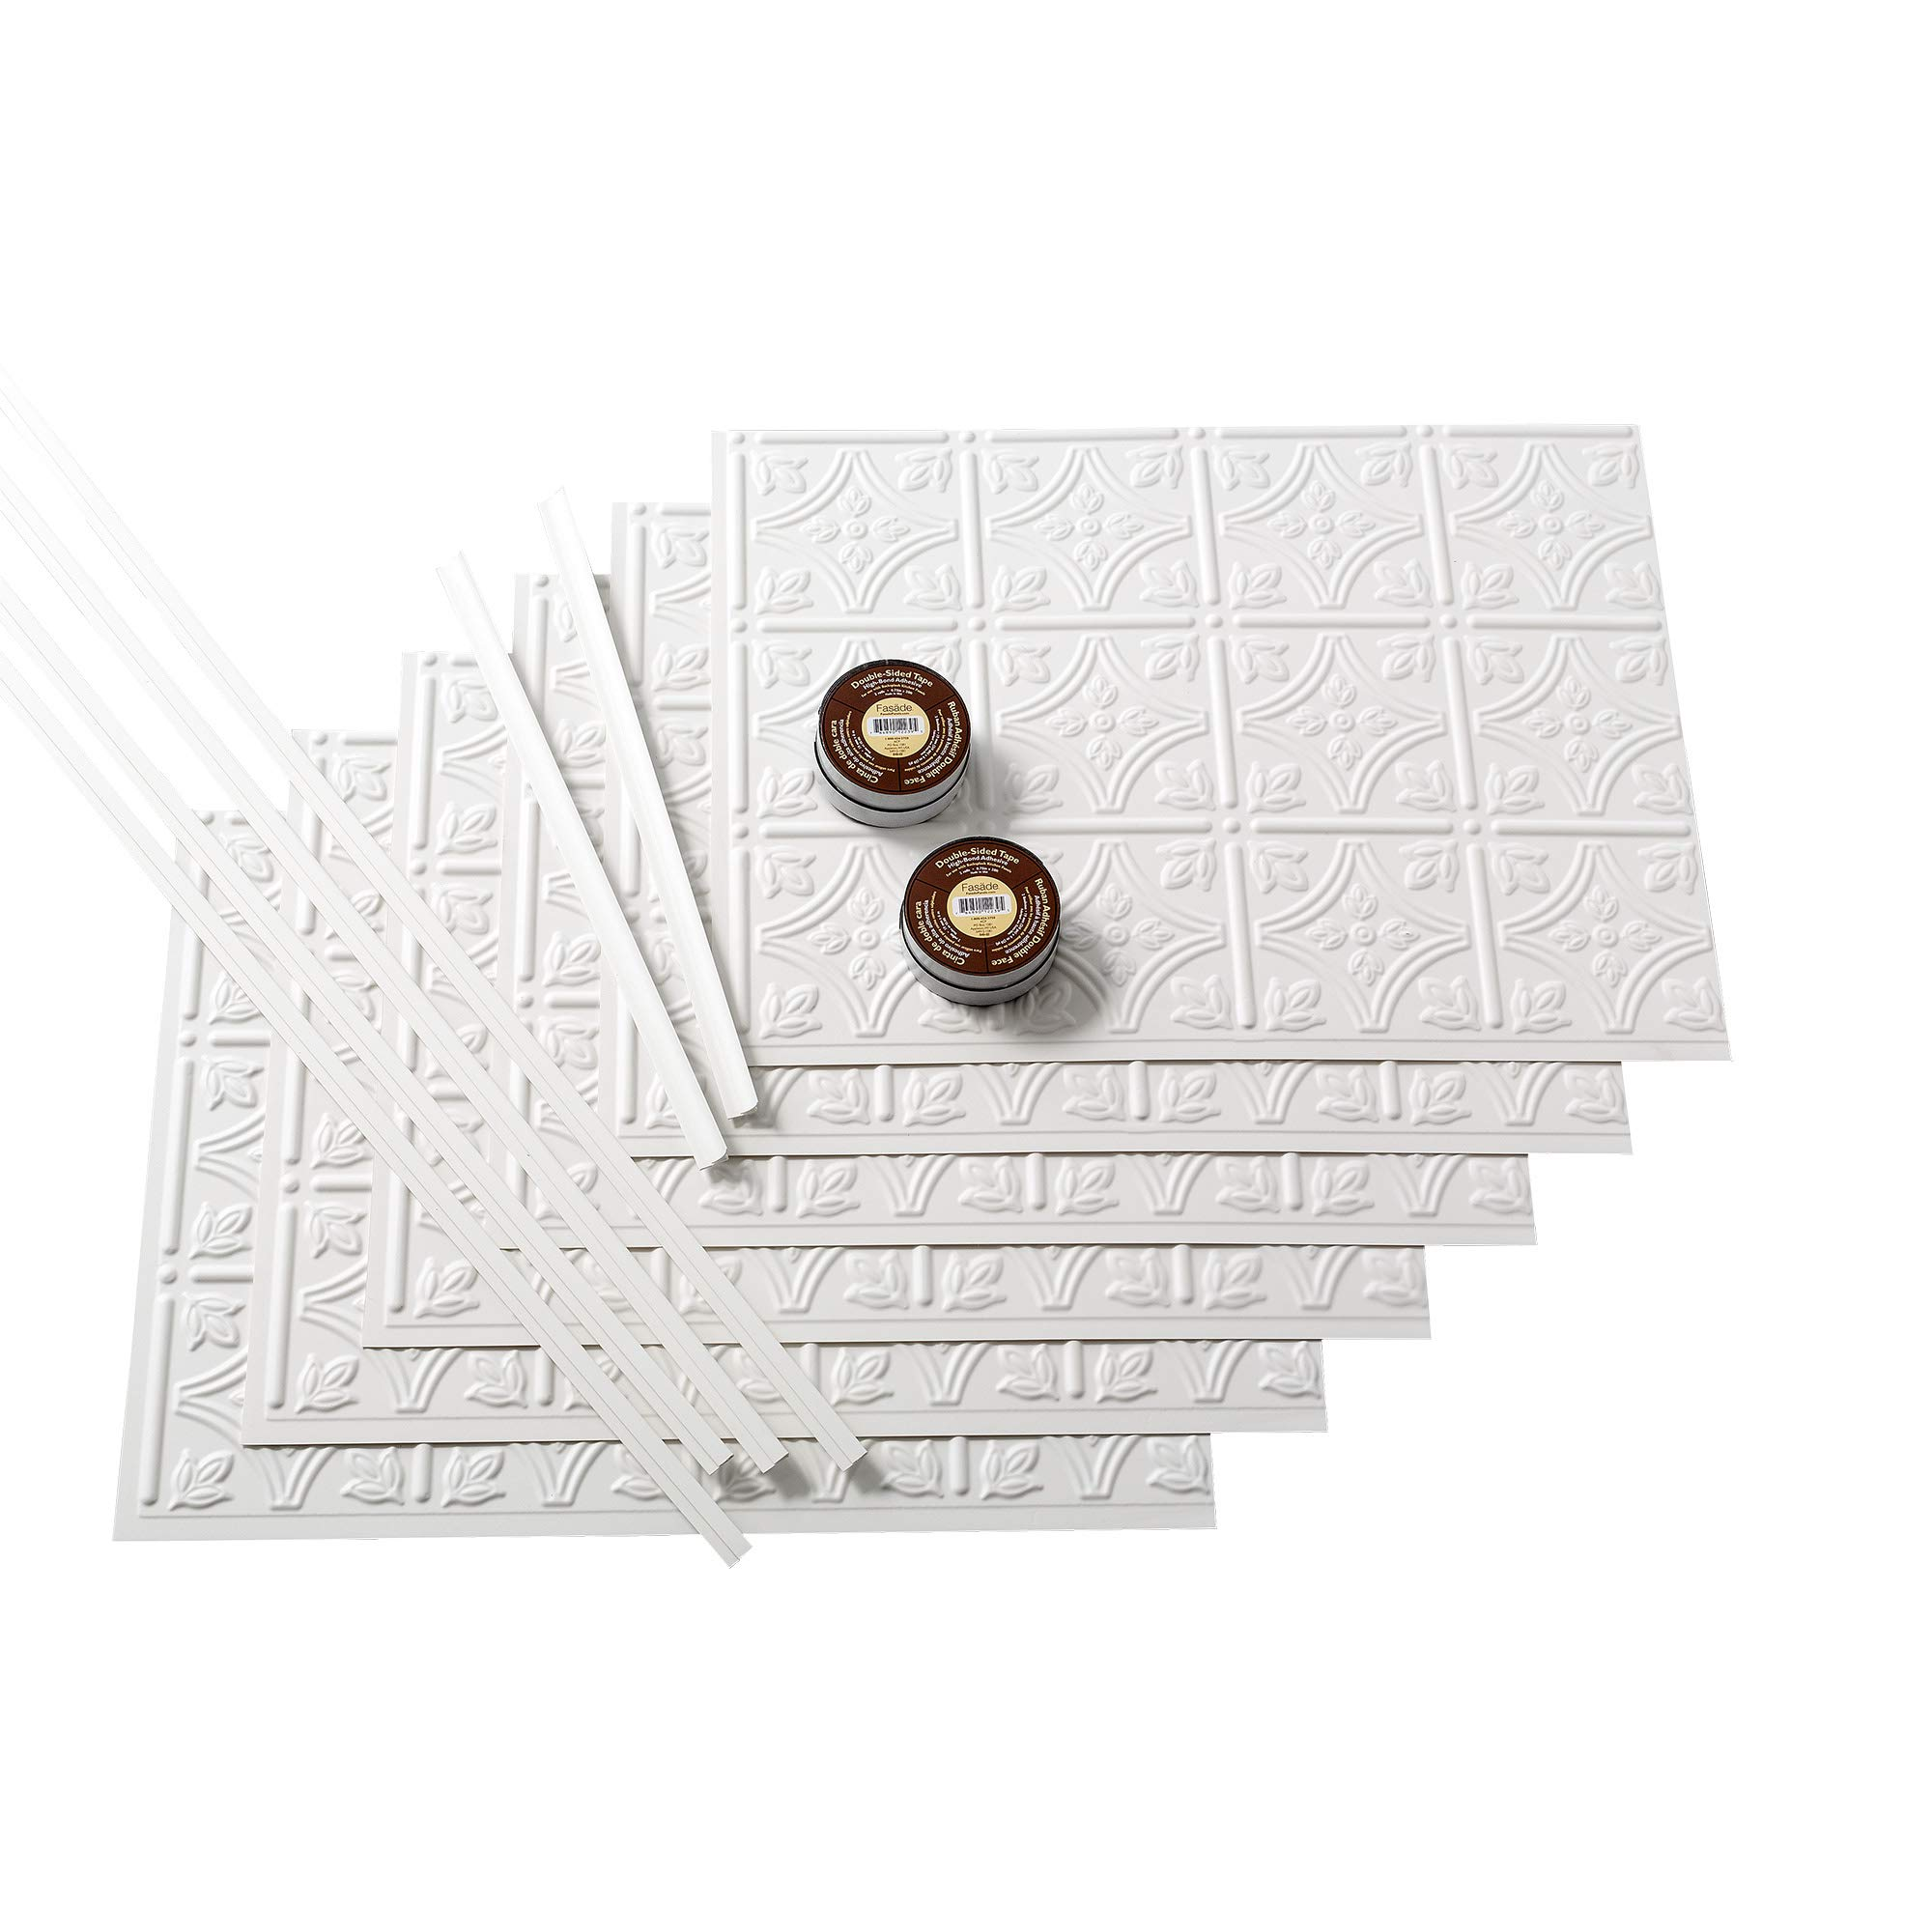 FASÄDE Traditional 1 Kitchen Backsplash Tile Kit - Perfect for DIY Projects and Home Renovations - Variety of Finishes and Styles - Easy-Install Tile (18 sq ft Kit, Matte White) by FASÄDE